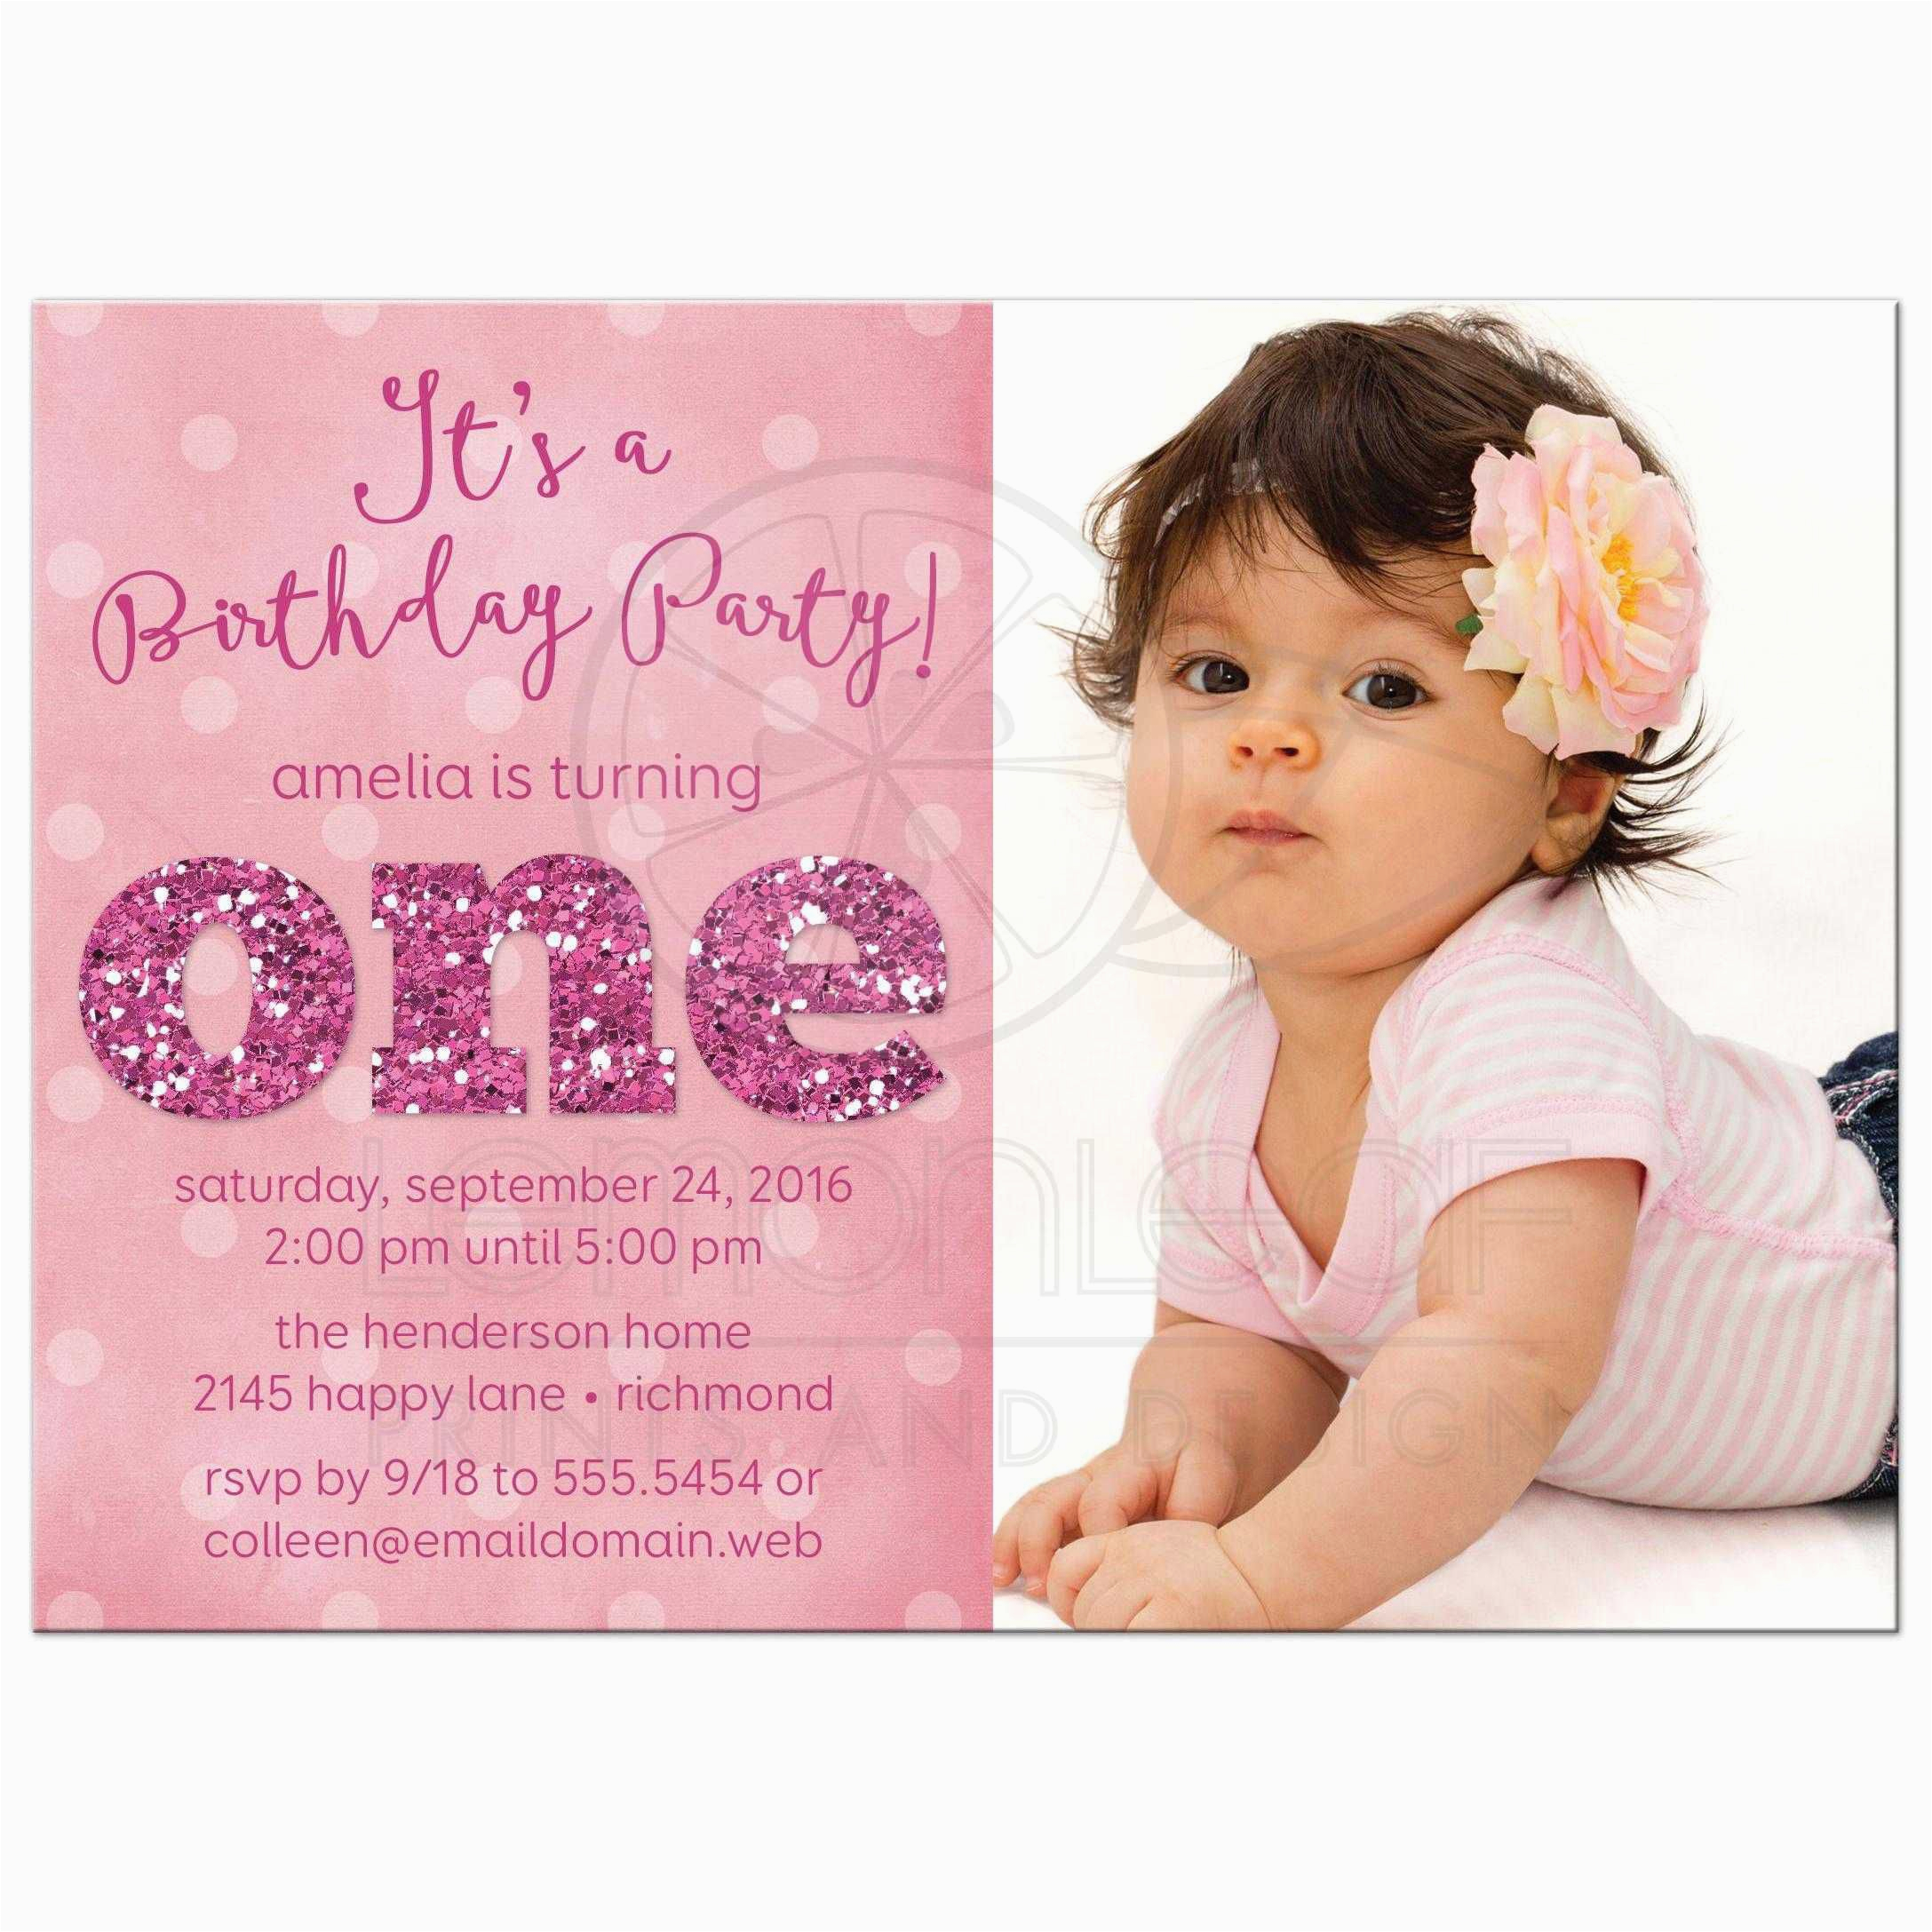 1 Year Old Birthday Invitation Card Sample 1st And Baptism Invitations